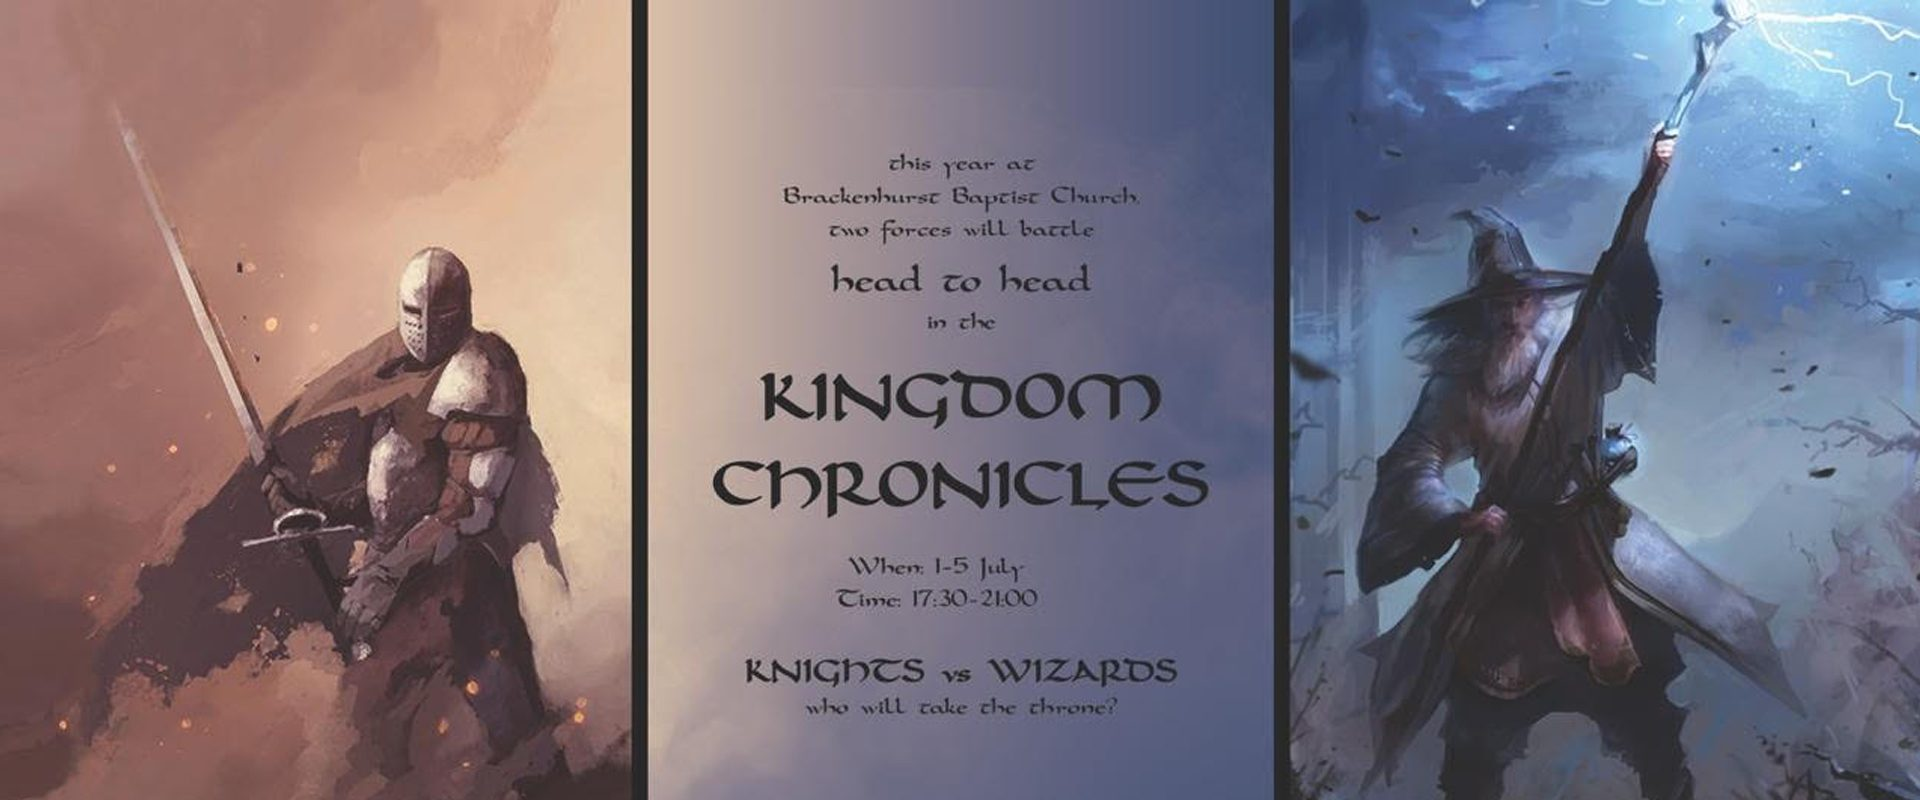 Teens for Christ 2019: Kingdom Chronicles